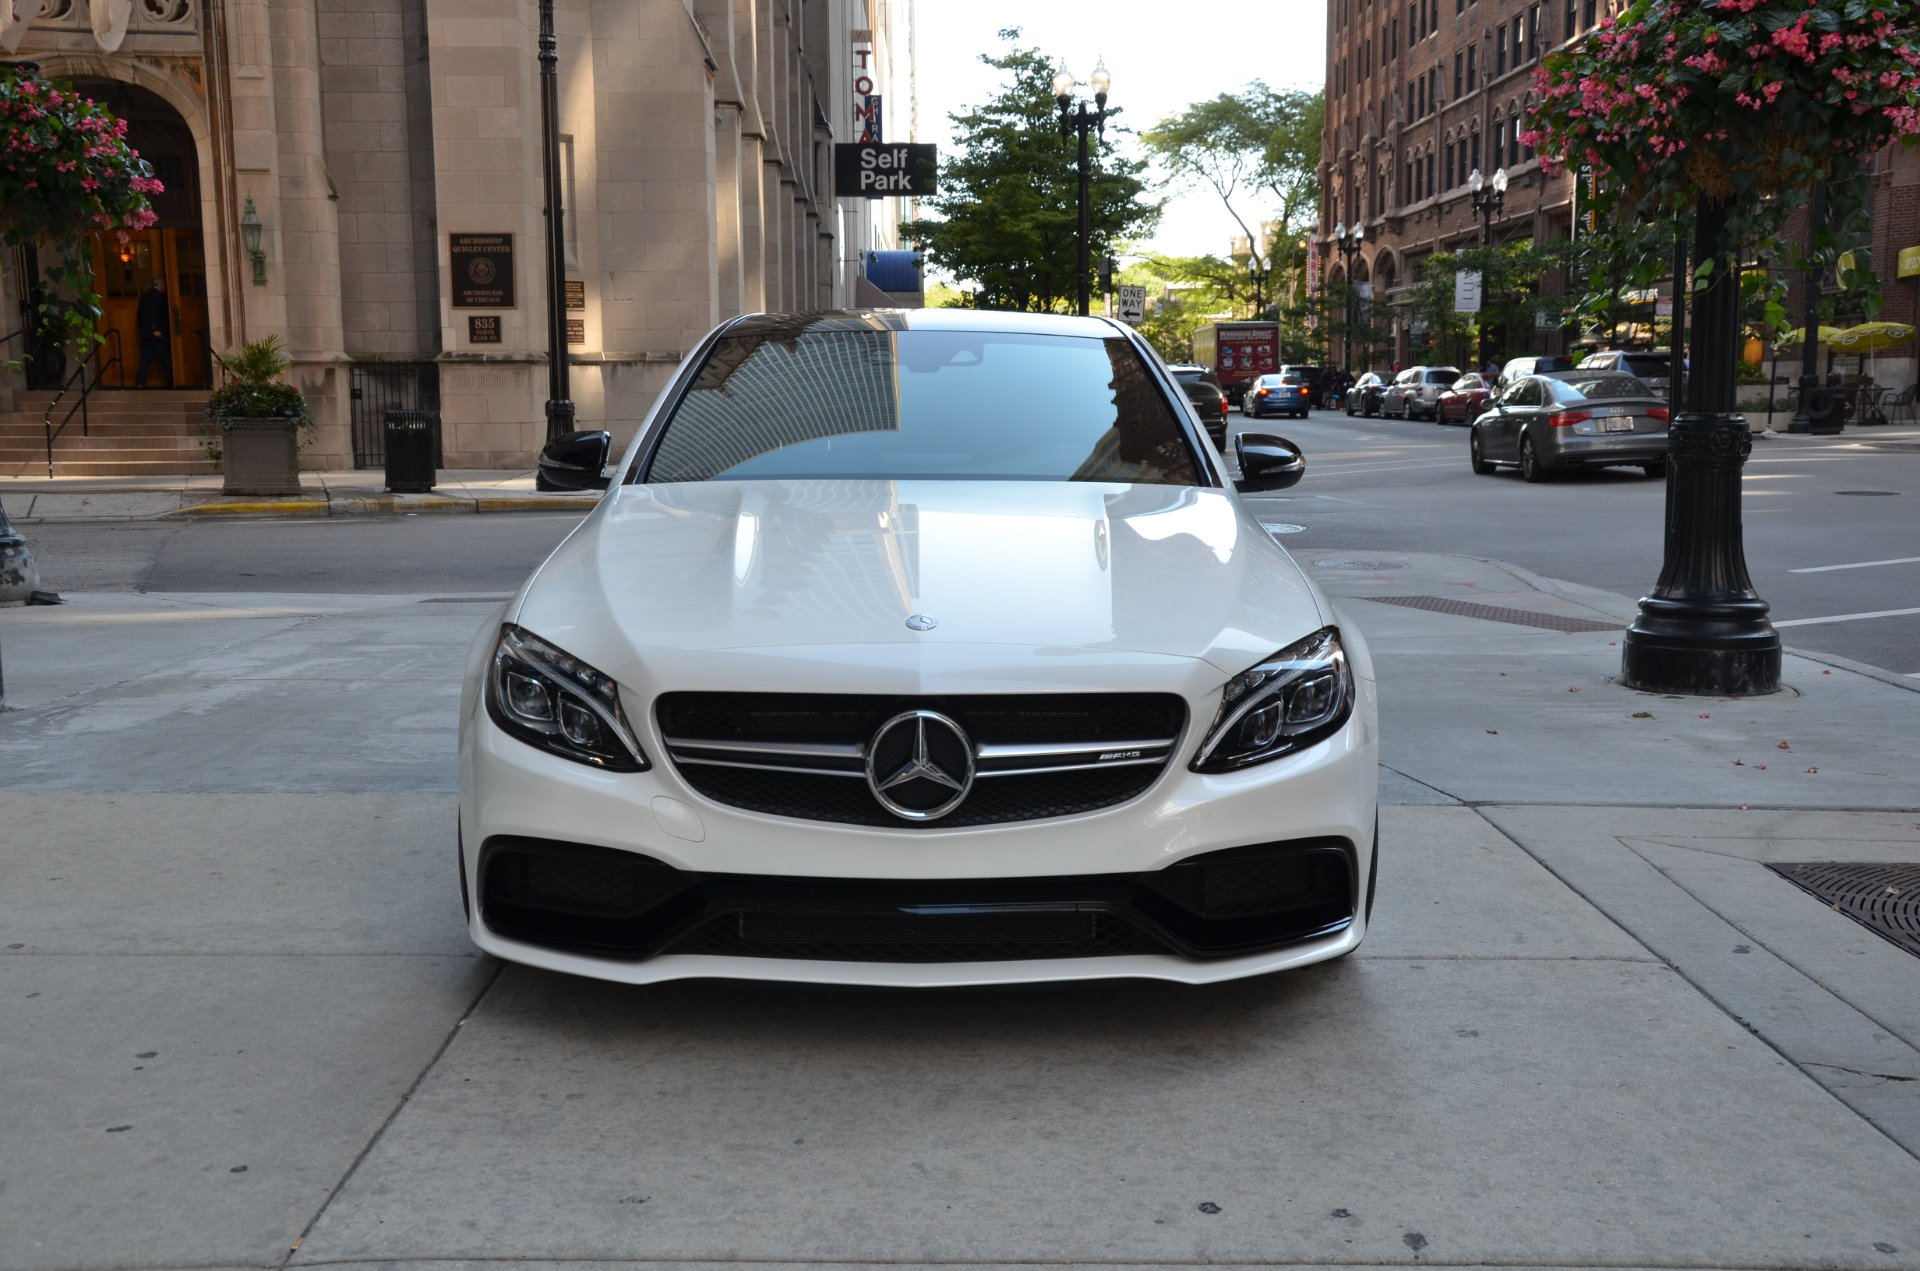 2015 mercedes benz c class c63 s amg stock gc charlie01 for Mercedes benz near me